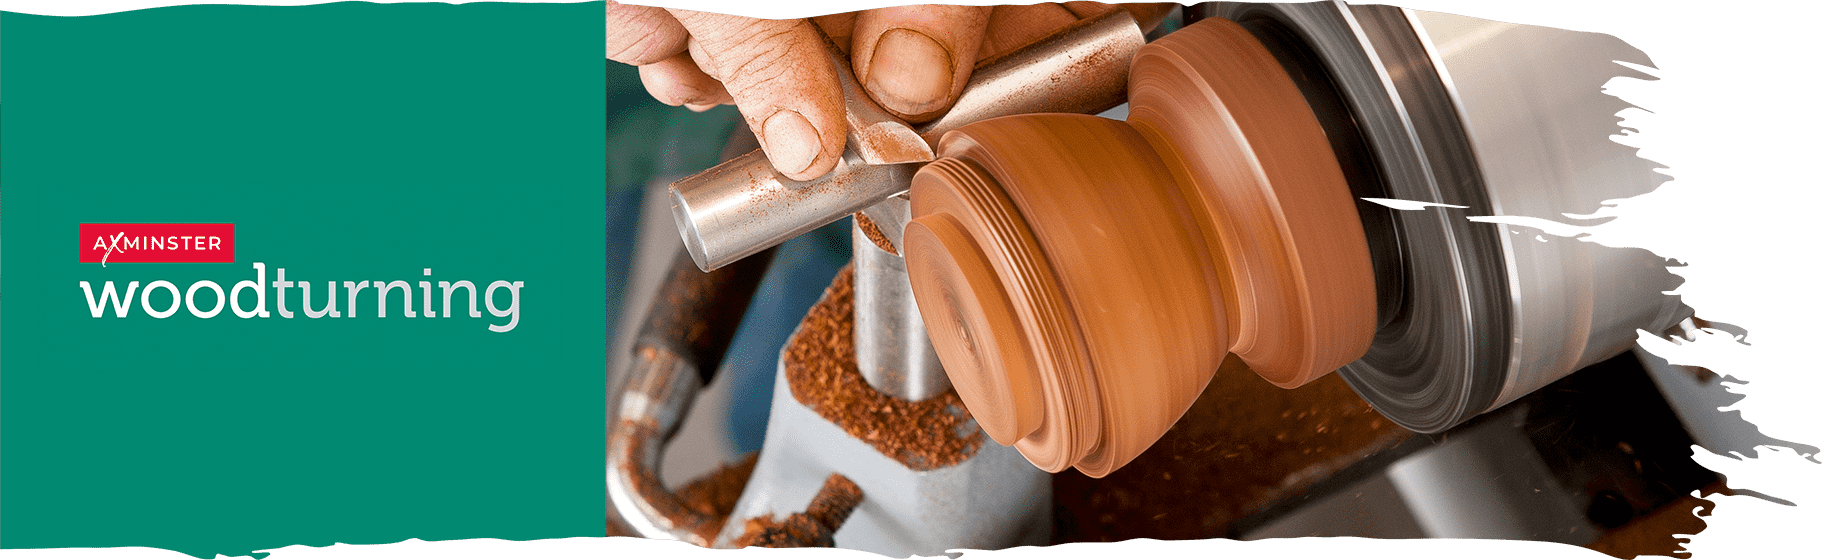 Axminster Woodturning